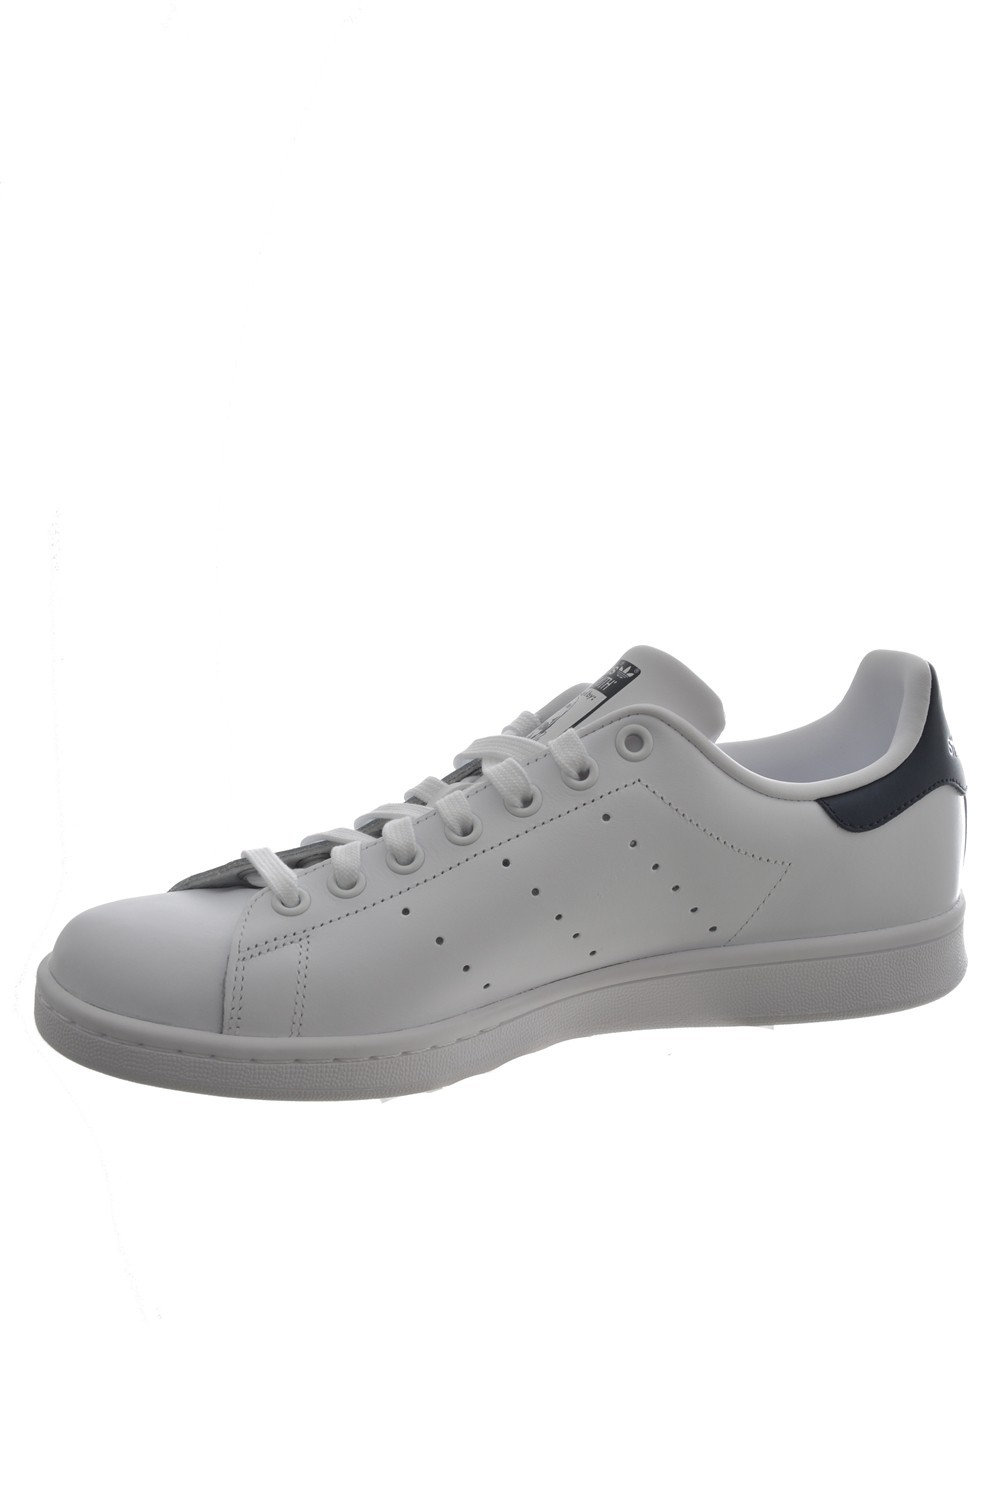 adidas original stan smith blanc